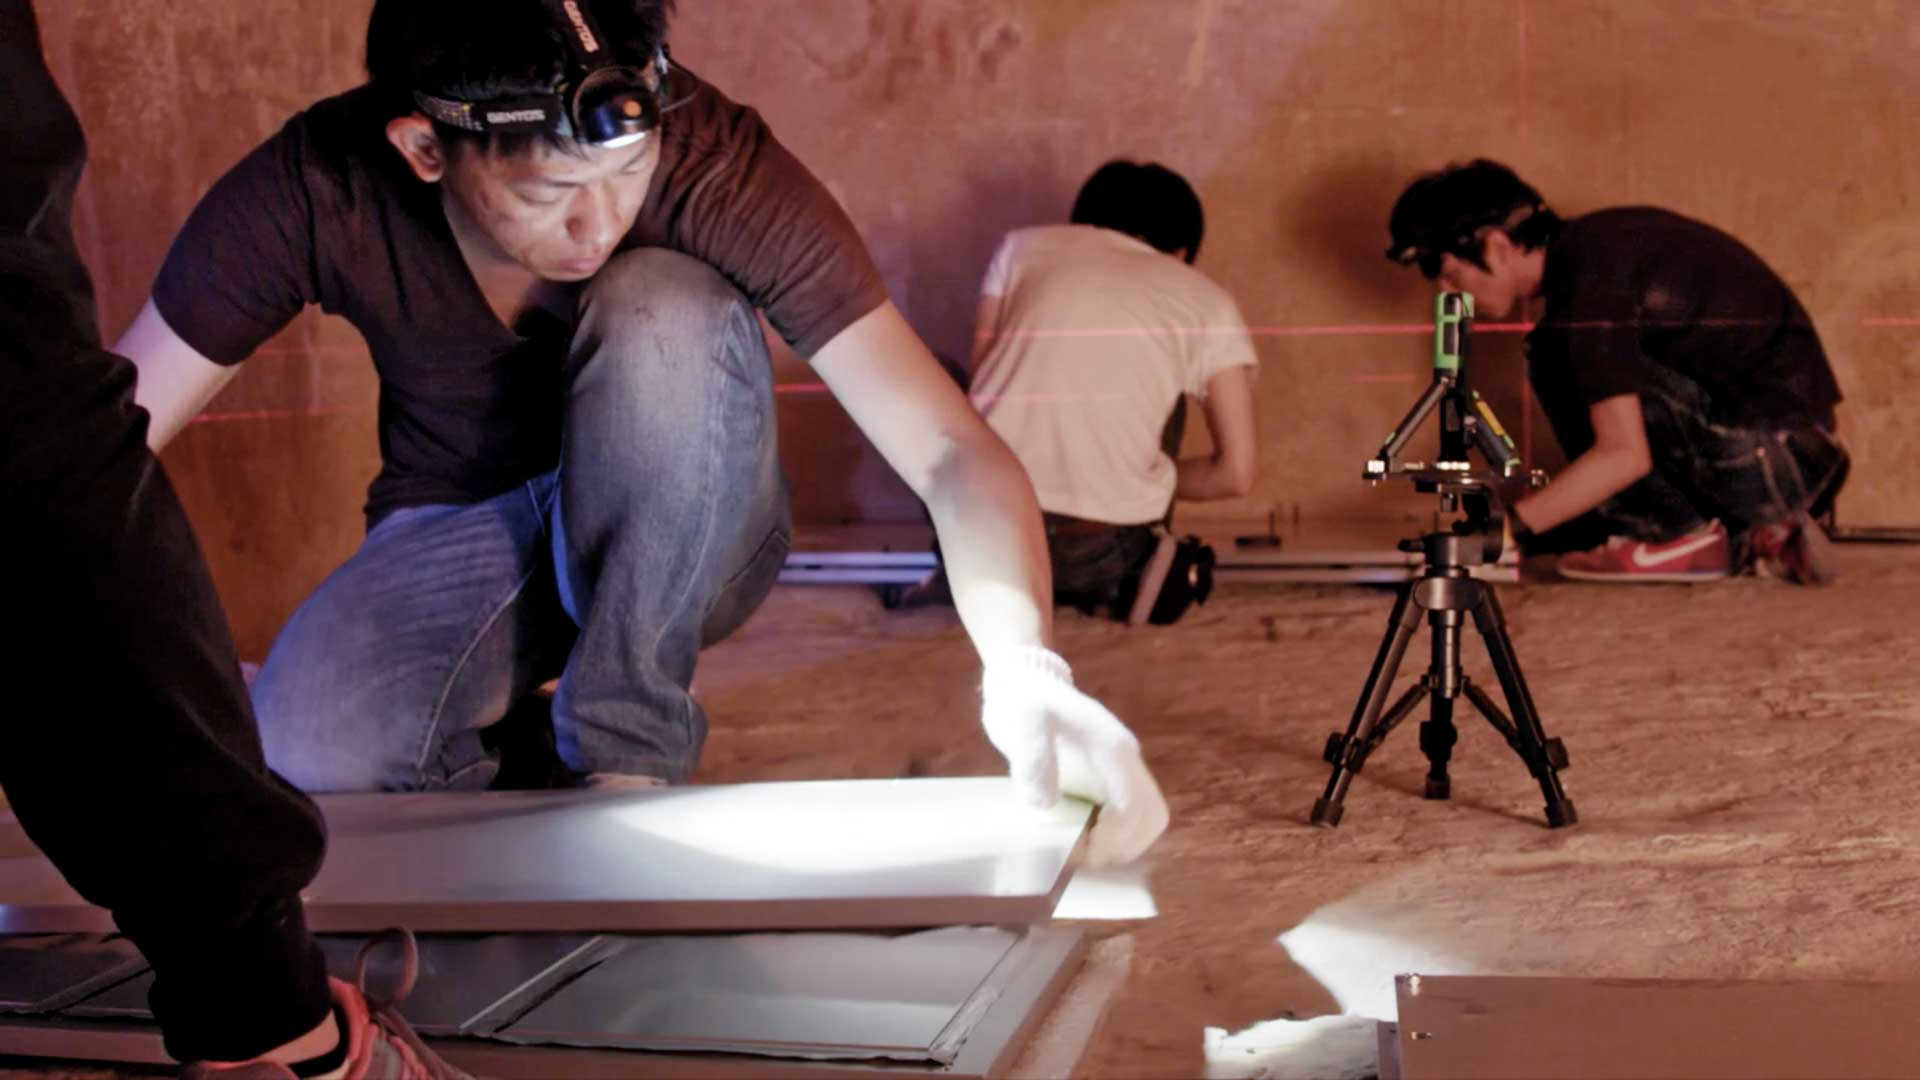 Scientists building the detector plates in the Queen's Chamber (Image: ©ScanPyramids)